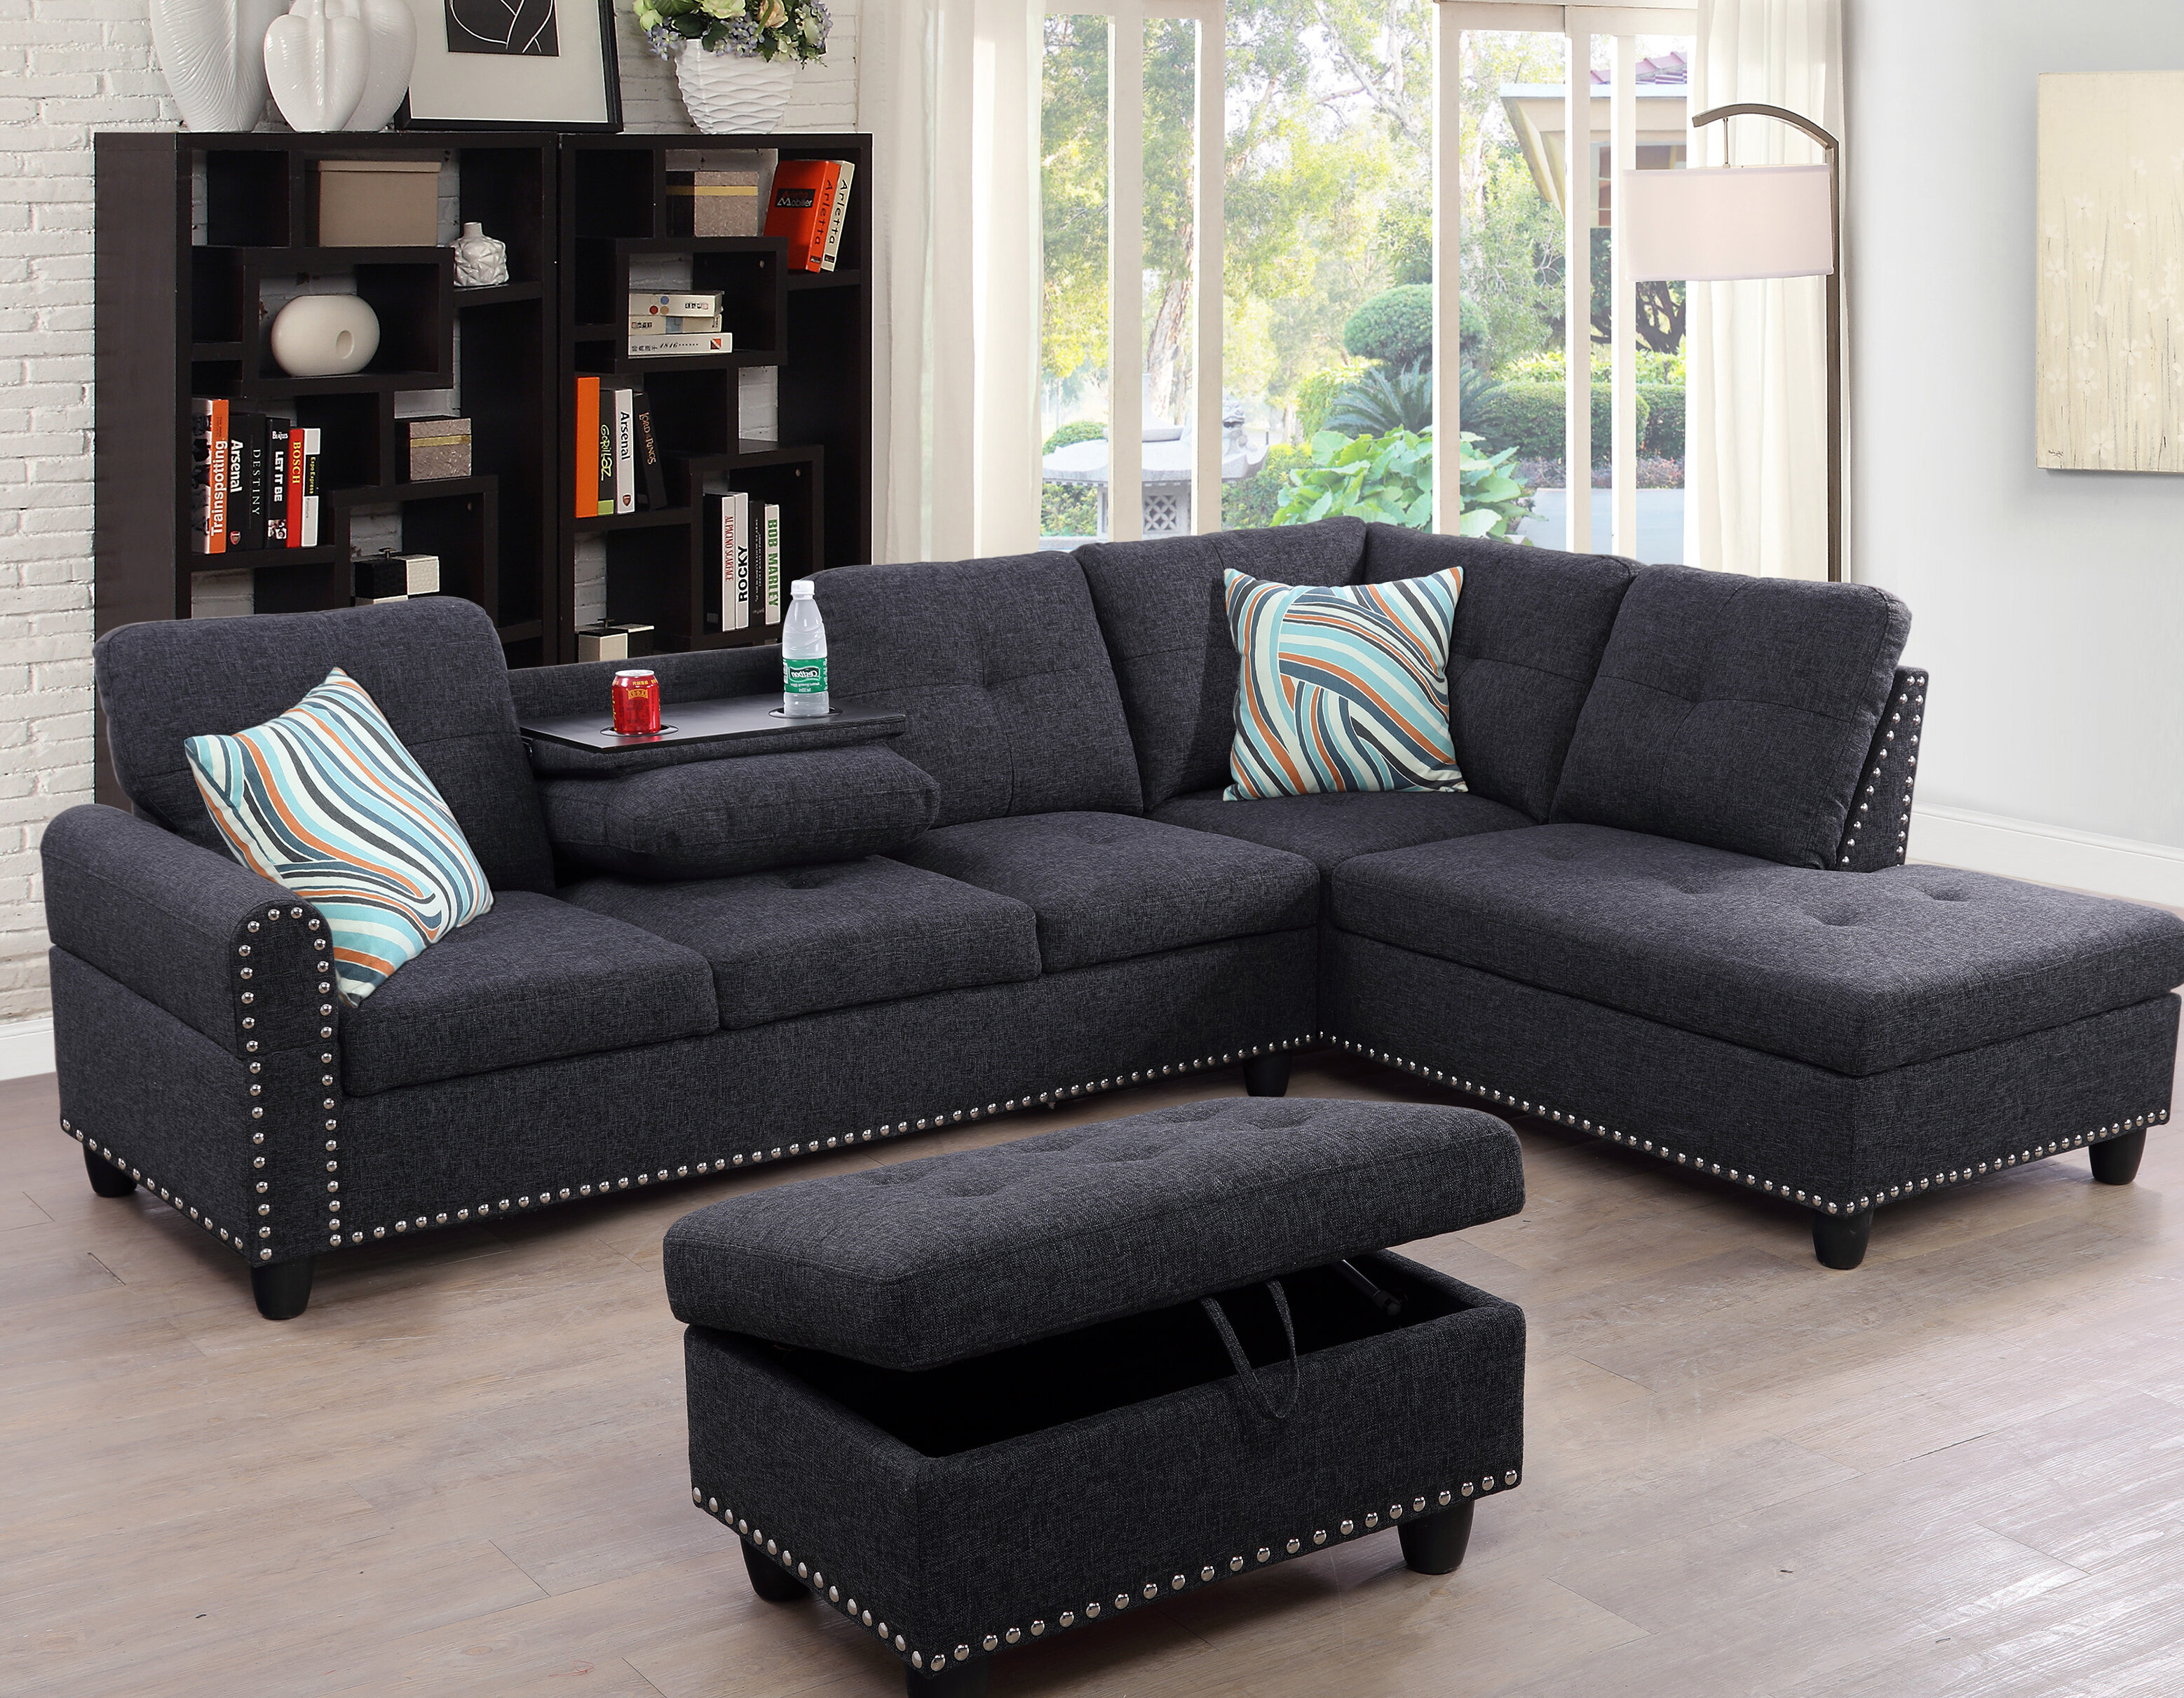 Admirable Charlton Home Sciortino Sectional With Ottoman Reviews Machost Co Dining Chair Design Ideas Machostcouk